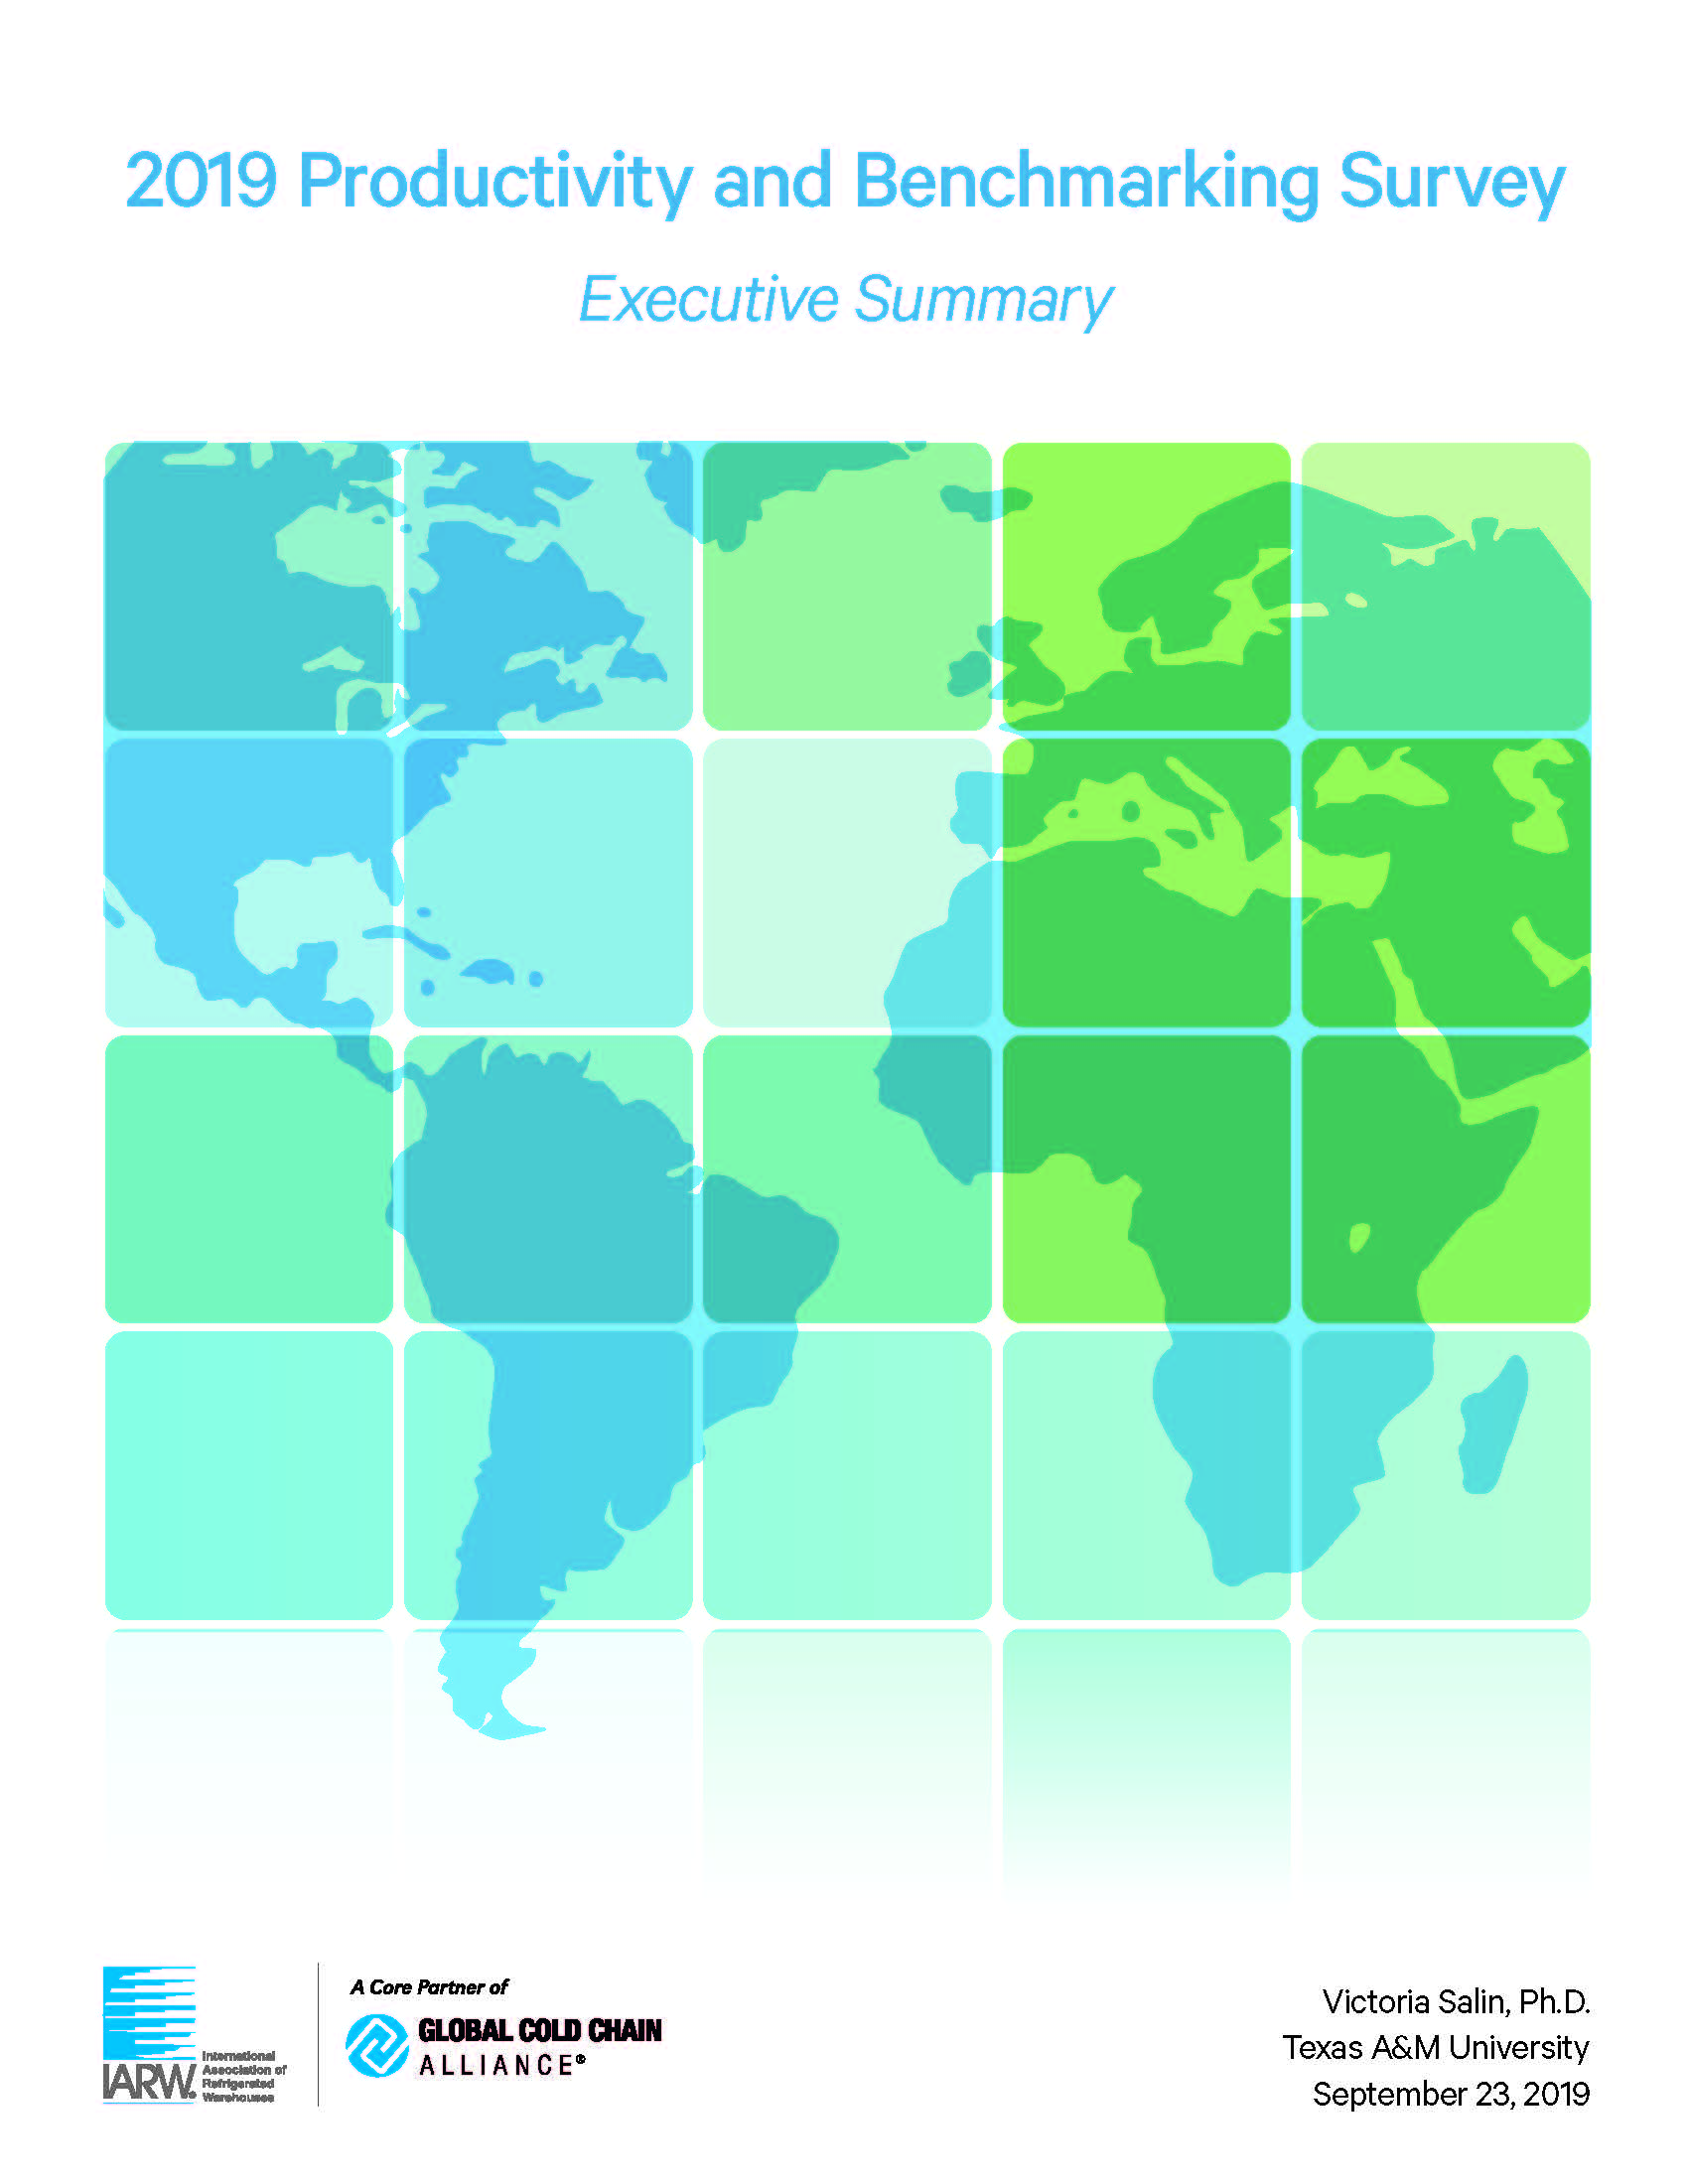 2019 Productivity and Benchmarking Report - Executive Summary